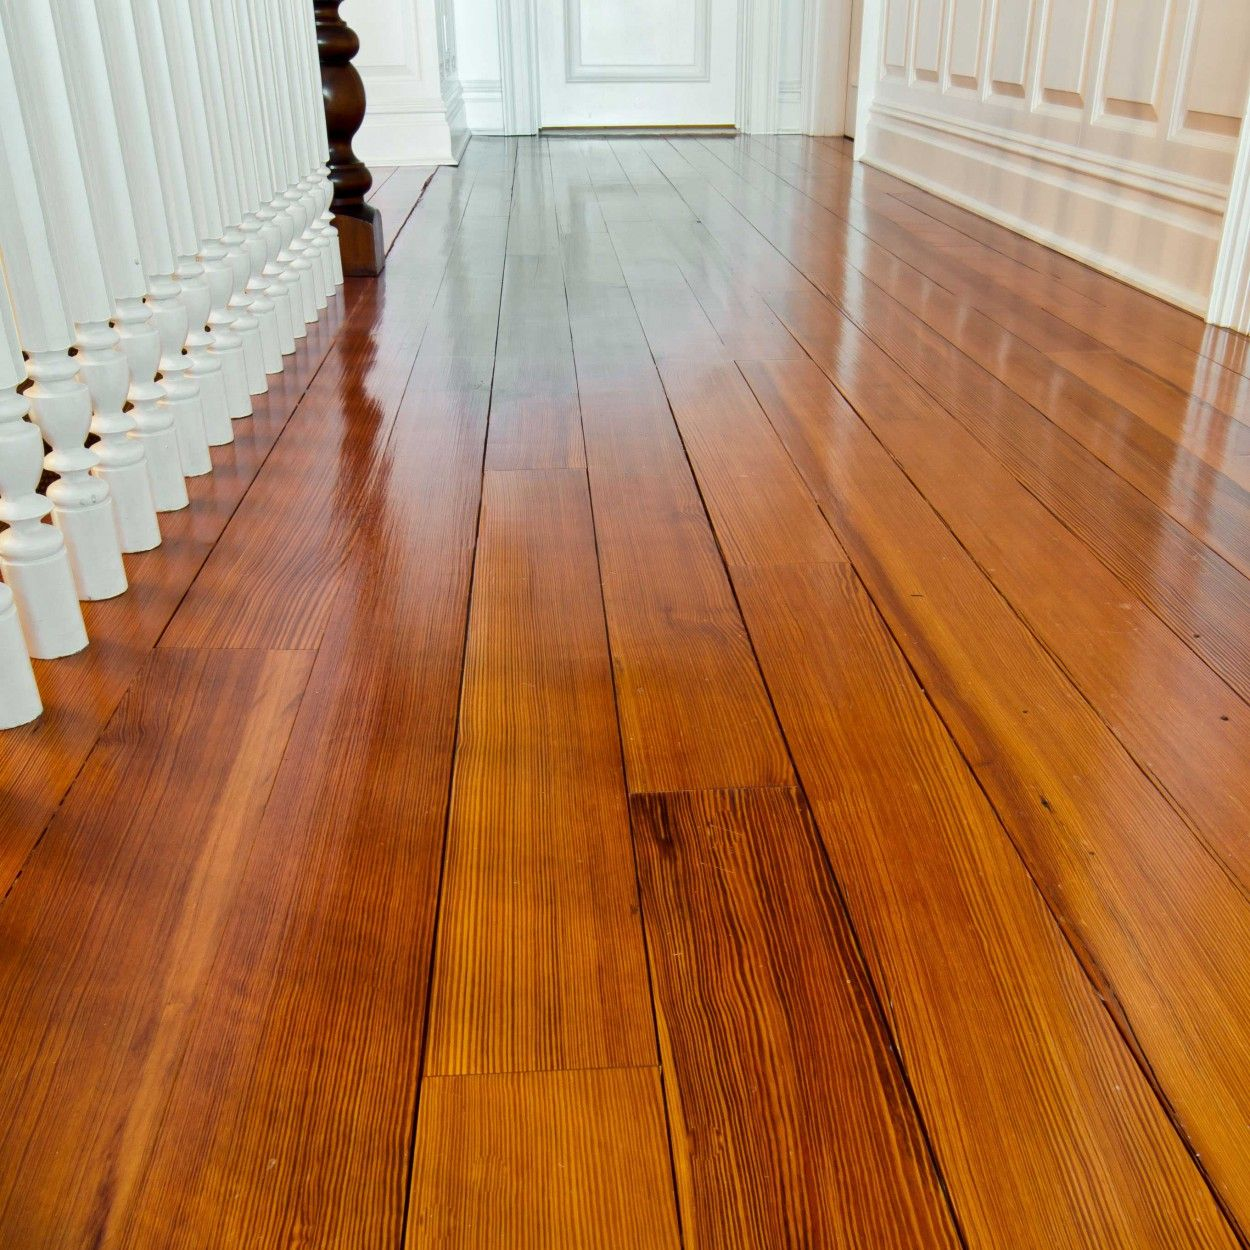 Reclaimed Salvaged Antique Heart Pine Flooring Clear Quartersawn Grain Private Residence